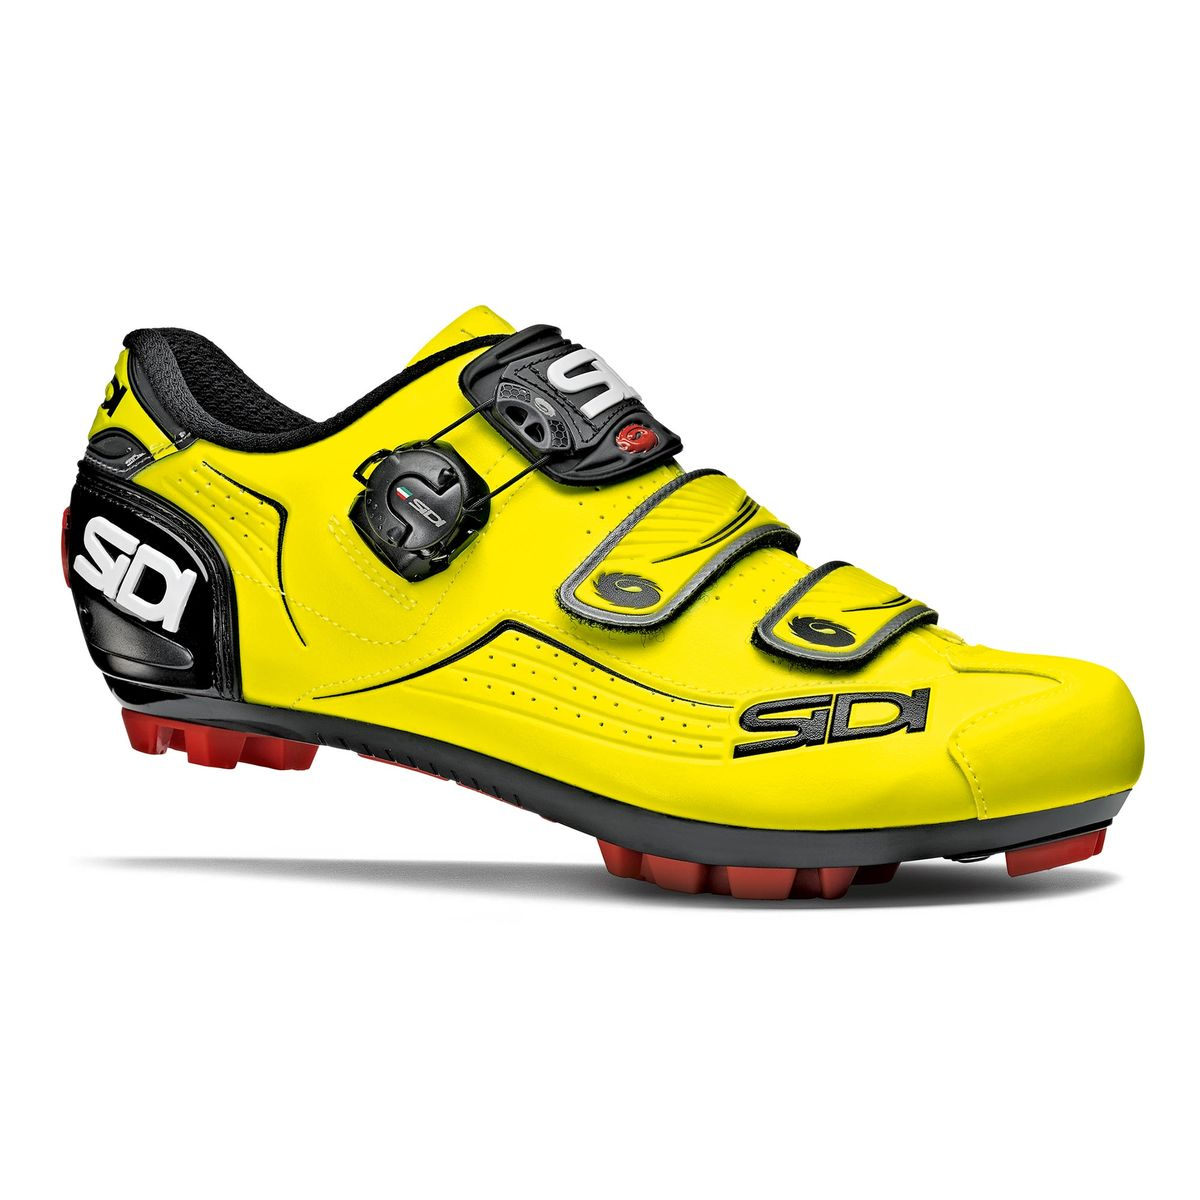 TRACE MTB shoes